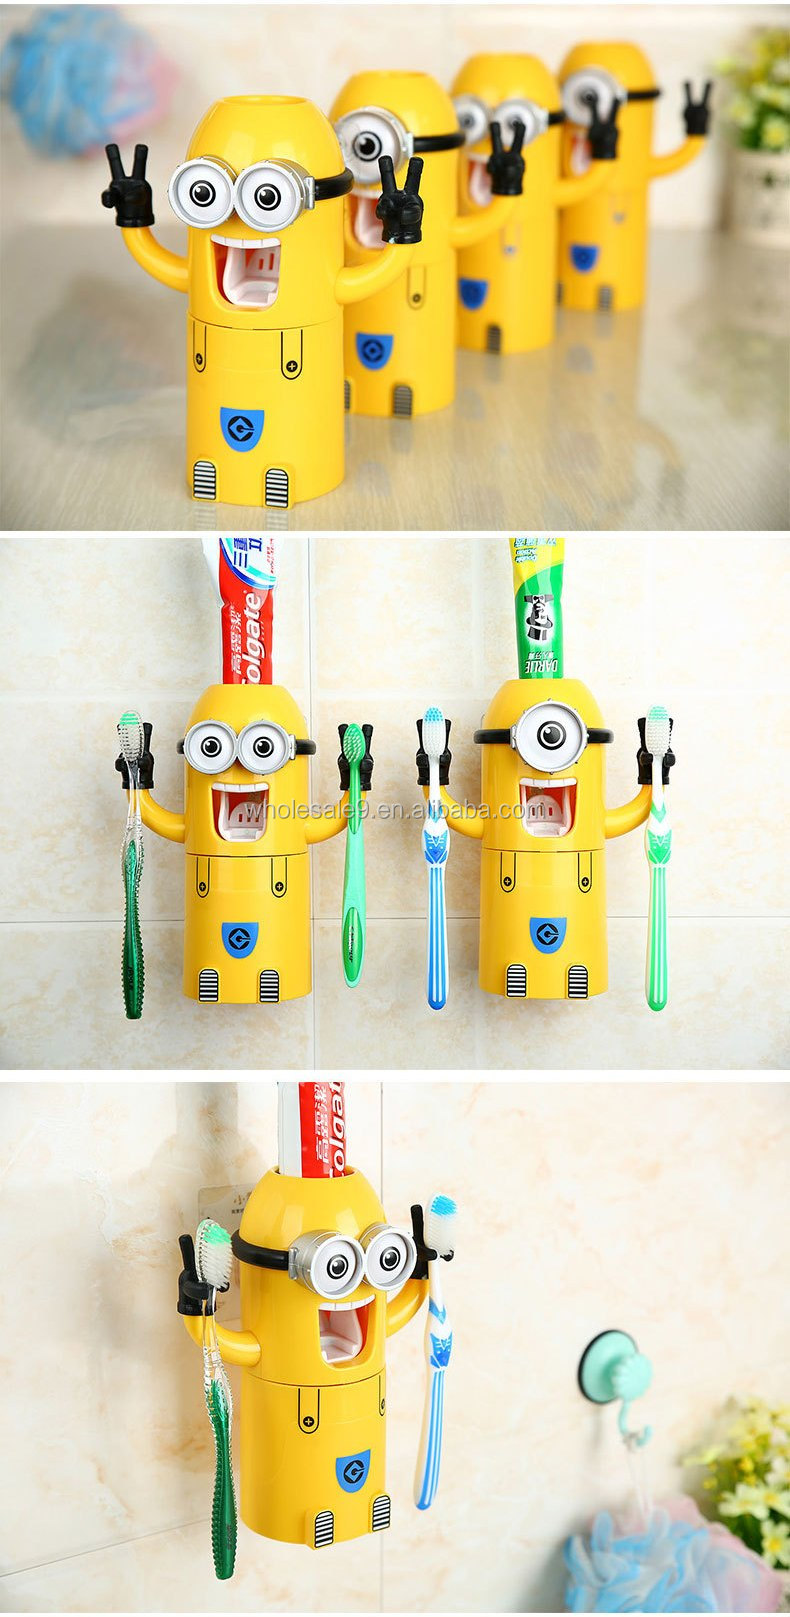 Mr. Minions Toothpaste Dispenser Kids Funny Bathroom Accessories/Automatic  Toothpaste Dispenser Toothbrush Rack Tumbler